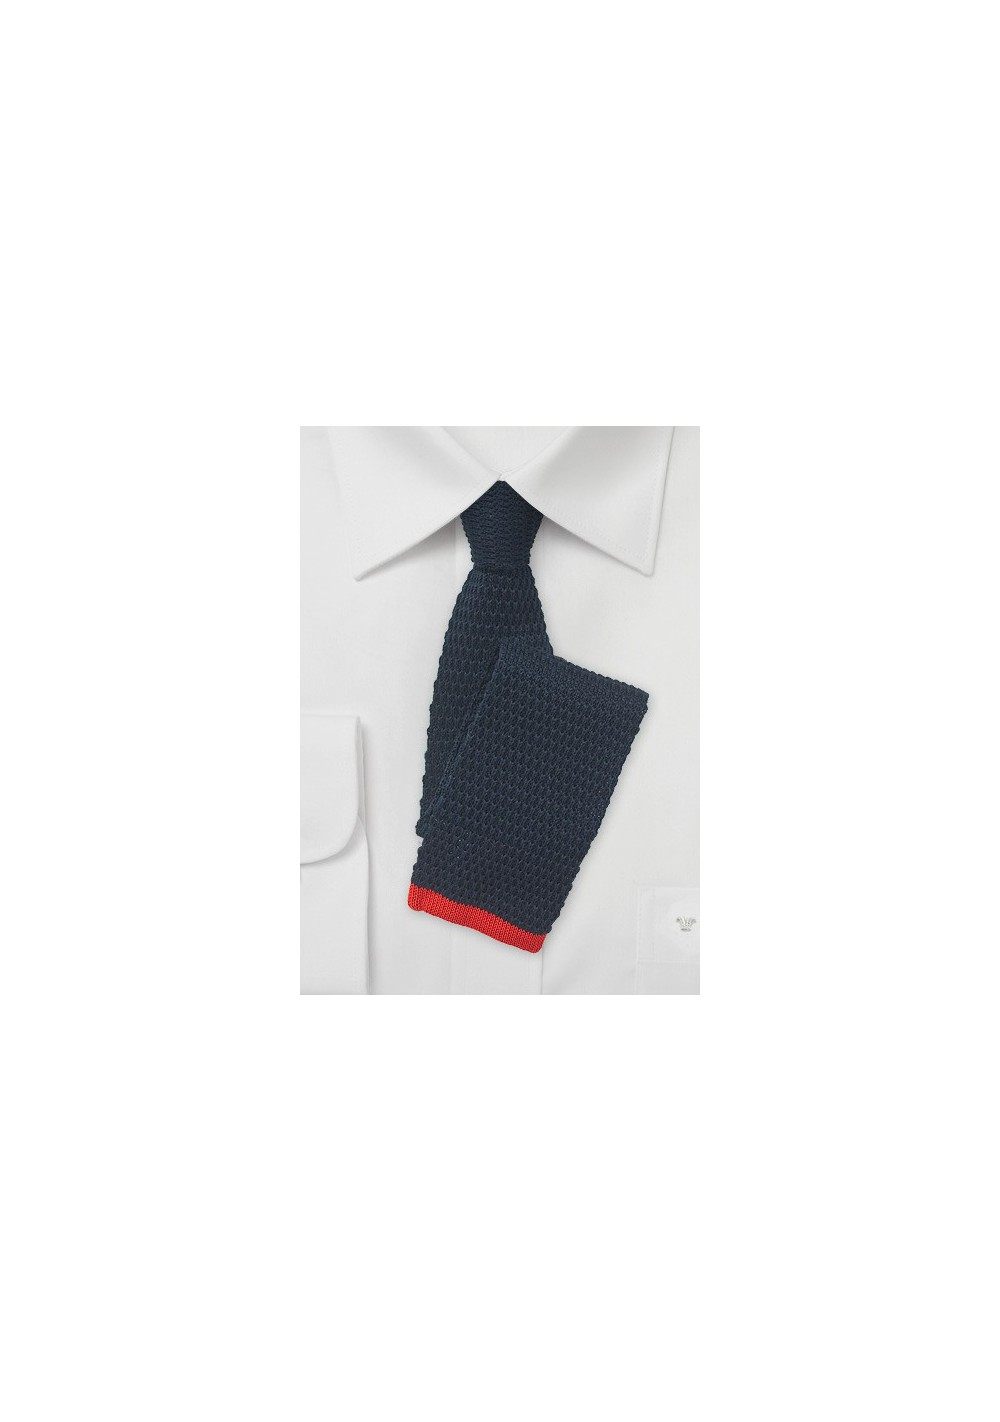 Navy Blue Knit Tie with Red Tip